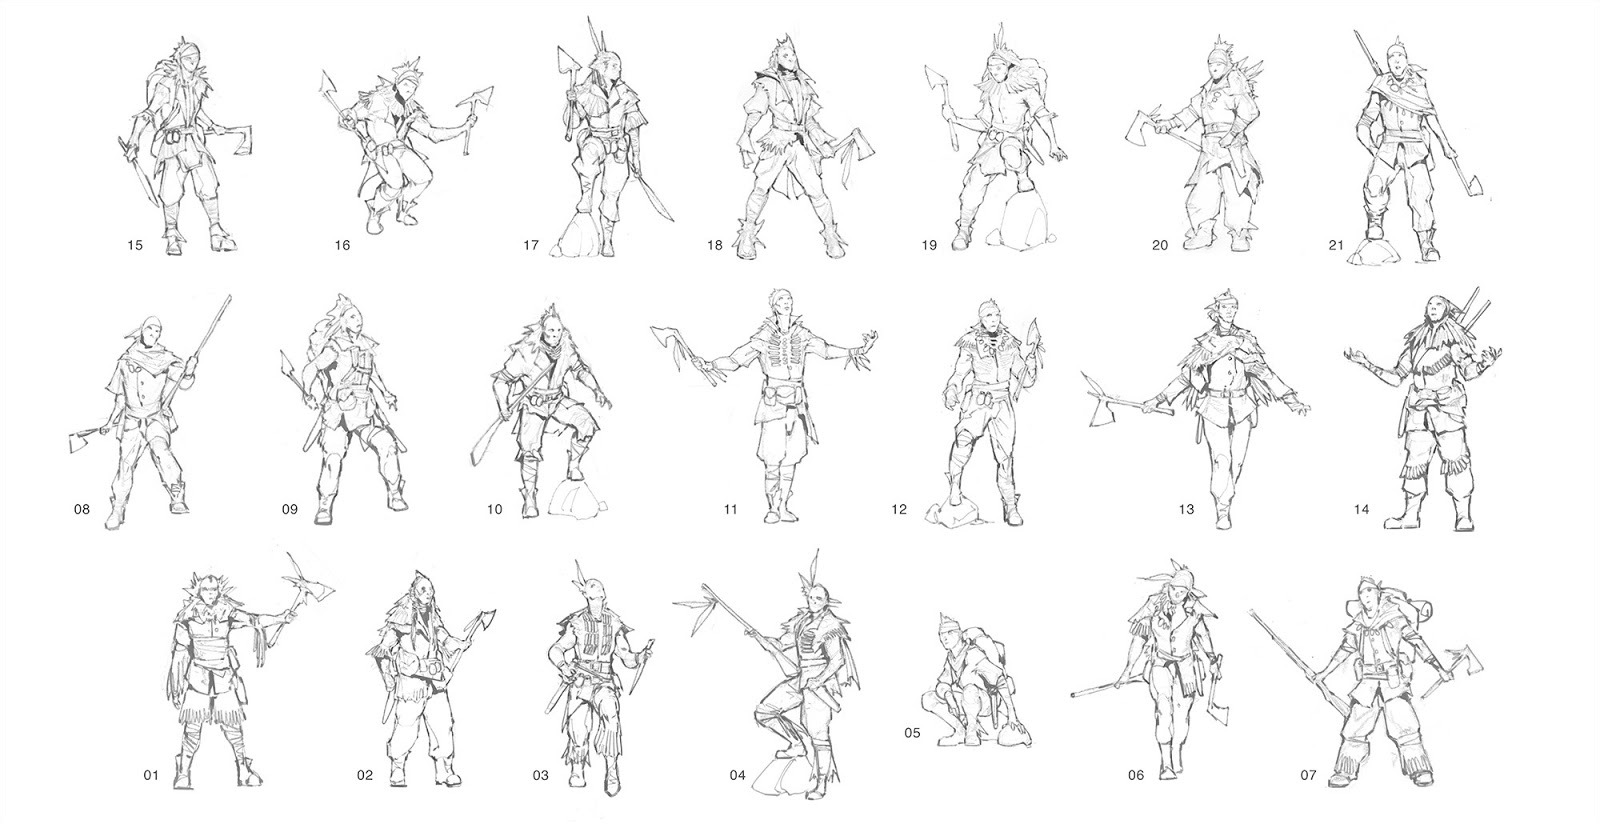 Character Design Outline : Images about thumbnails on pinterest character